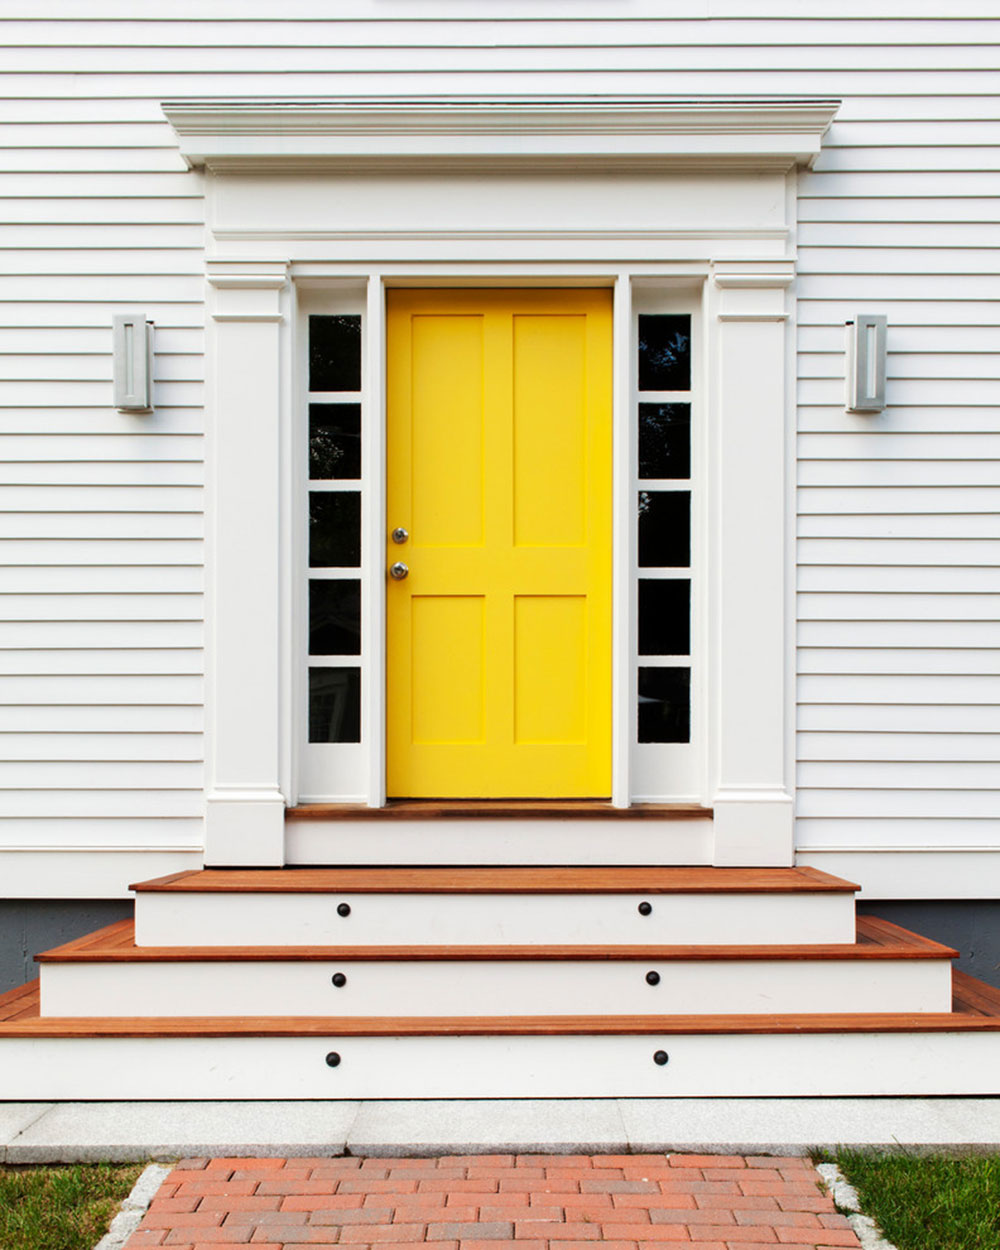 Basic-Yellow-Door Yellow front door Ideas for a lively house entrance